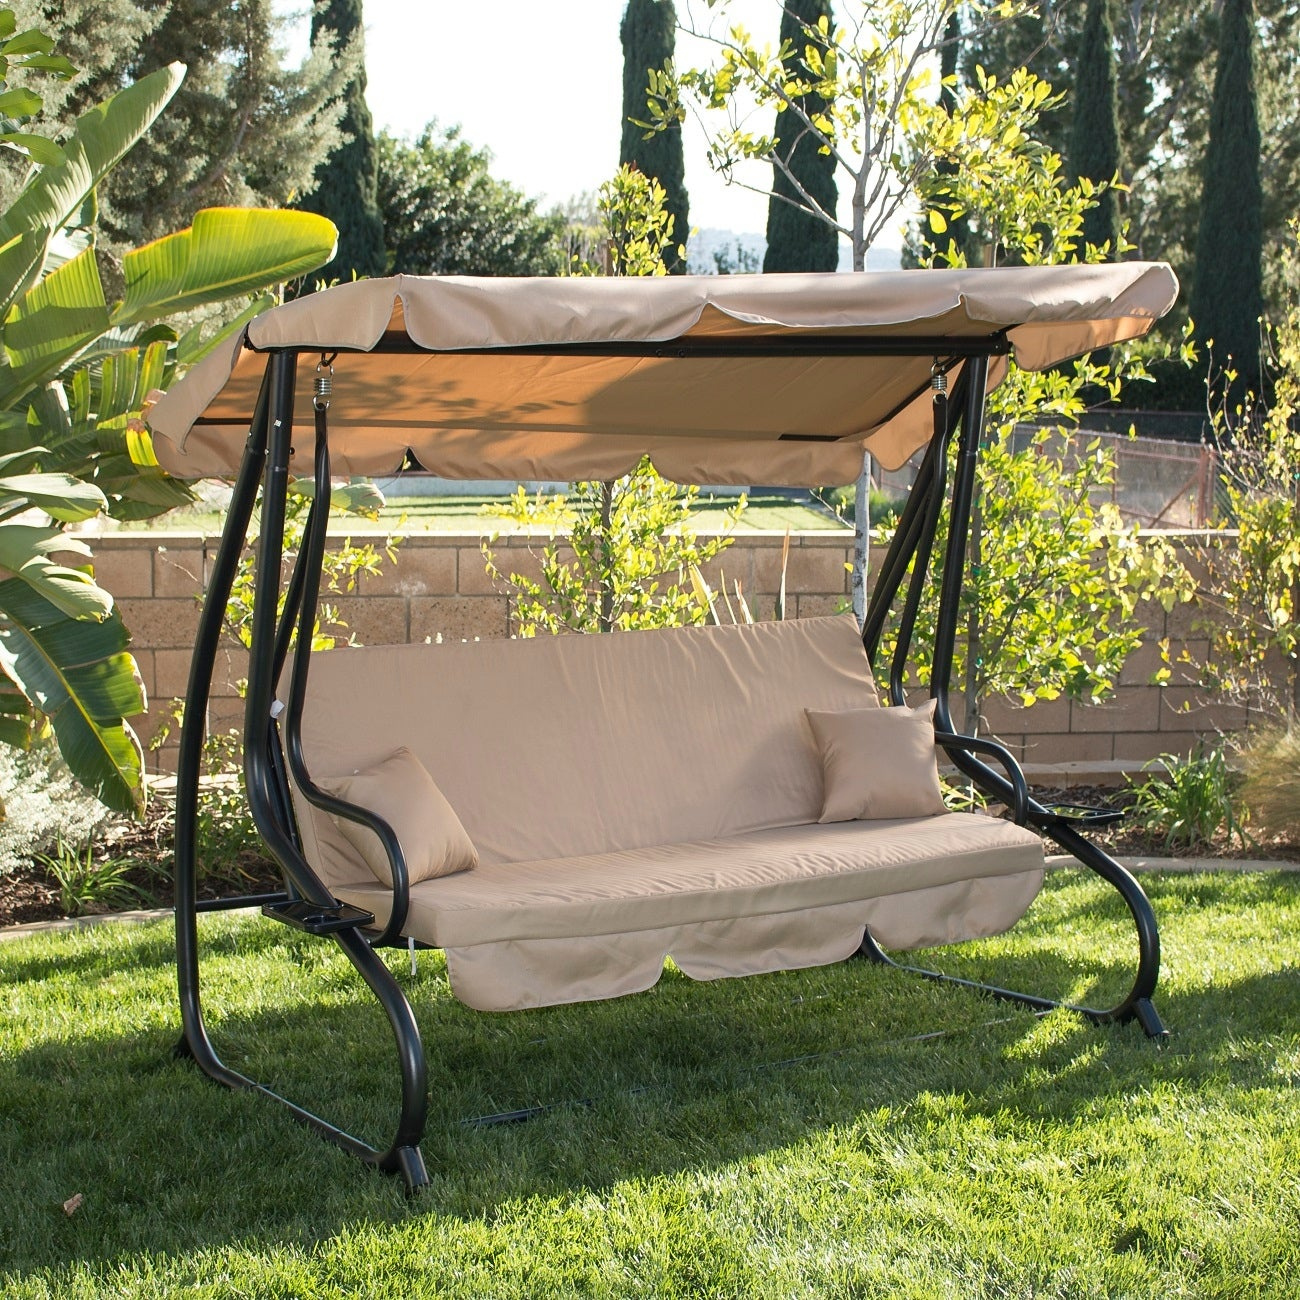 Belleze Outdoor Canopy Porch Swing Bed Hammock Tilt Canopy Sun Shade Steel Frame Throughout Canopy Porch Swings (View 15 of 25)